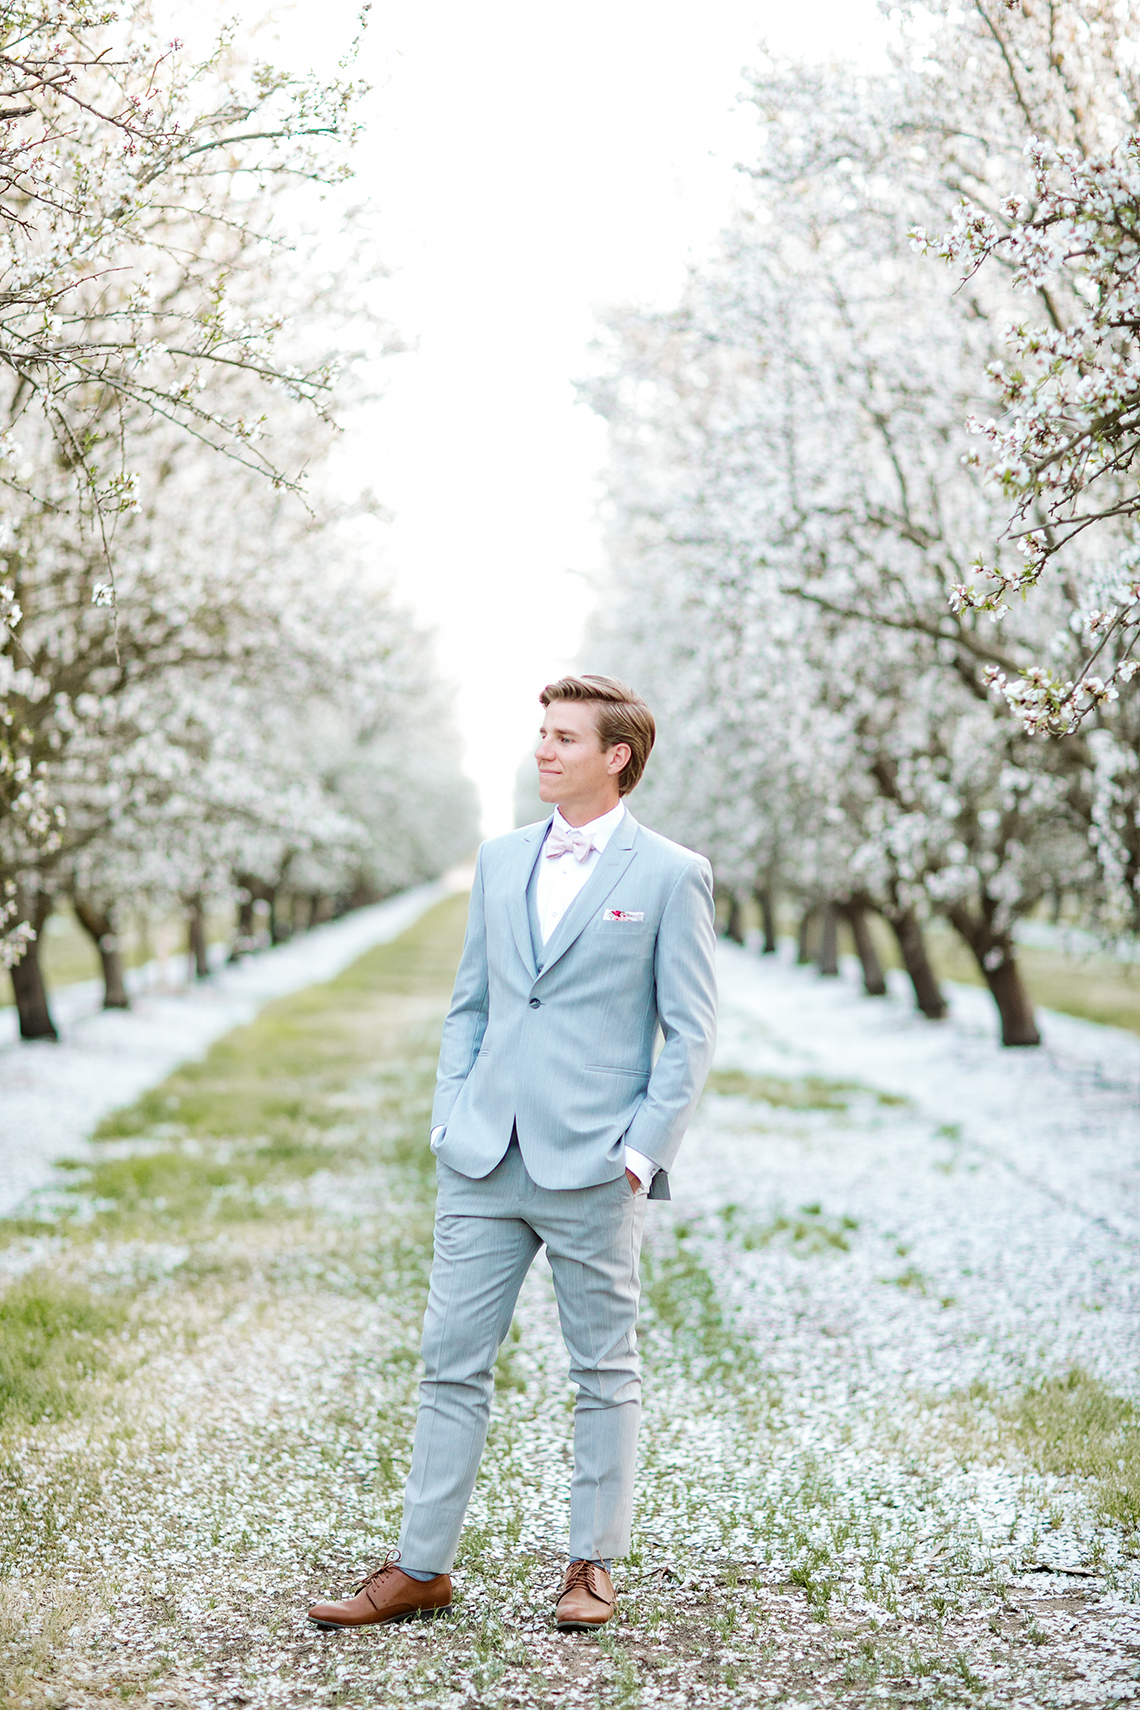 Whimsical Almond Orchard Blossom Wedding Inspiration – Playful Soul Photography 29